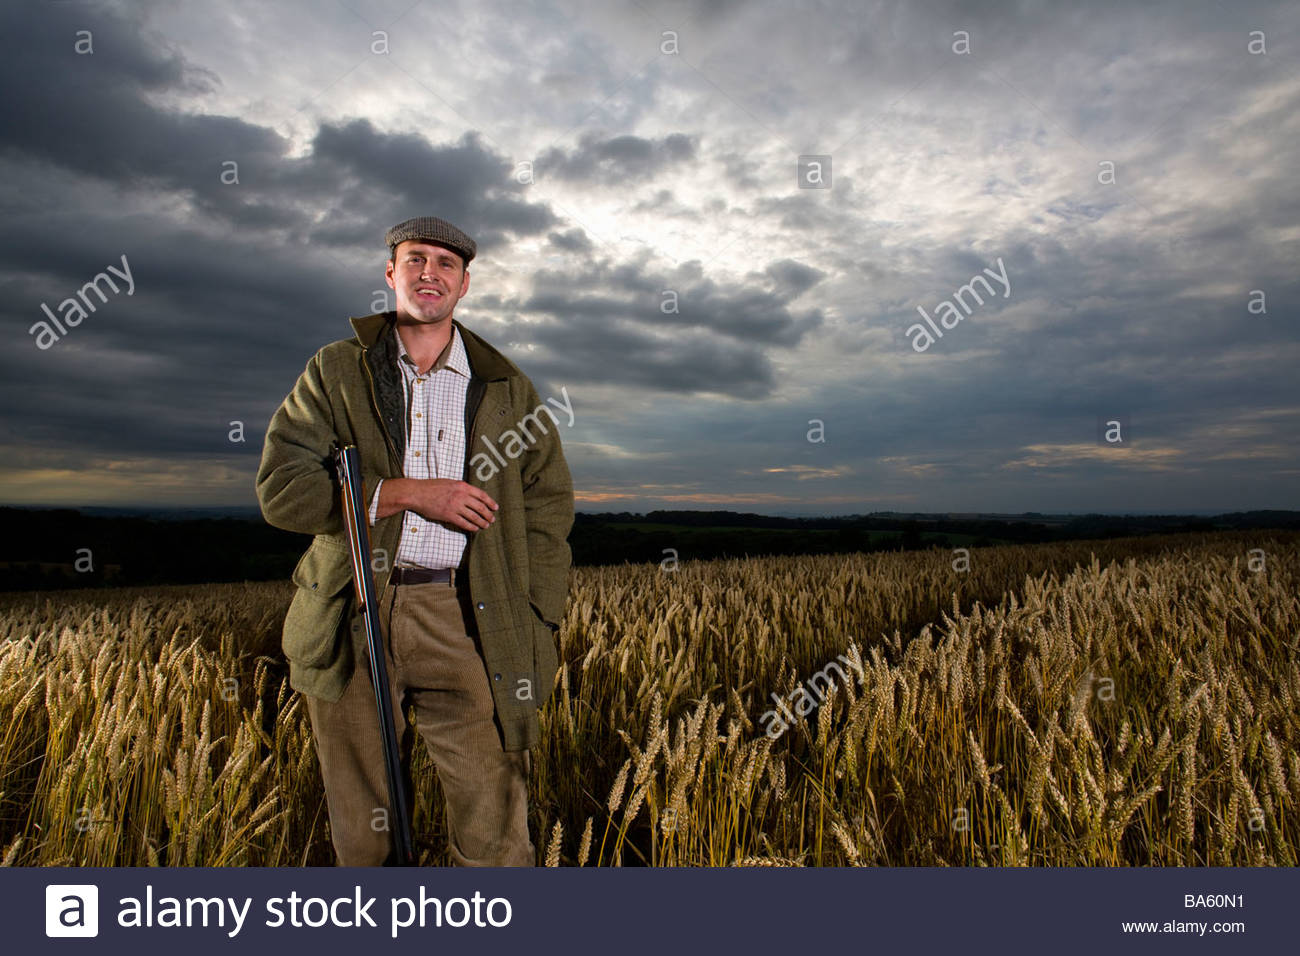 Portrait of hunter with rifle standing in wheat field - Stock Image